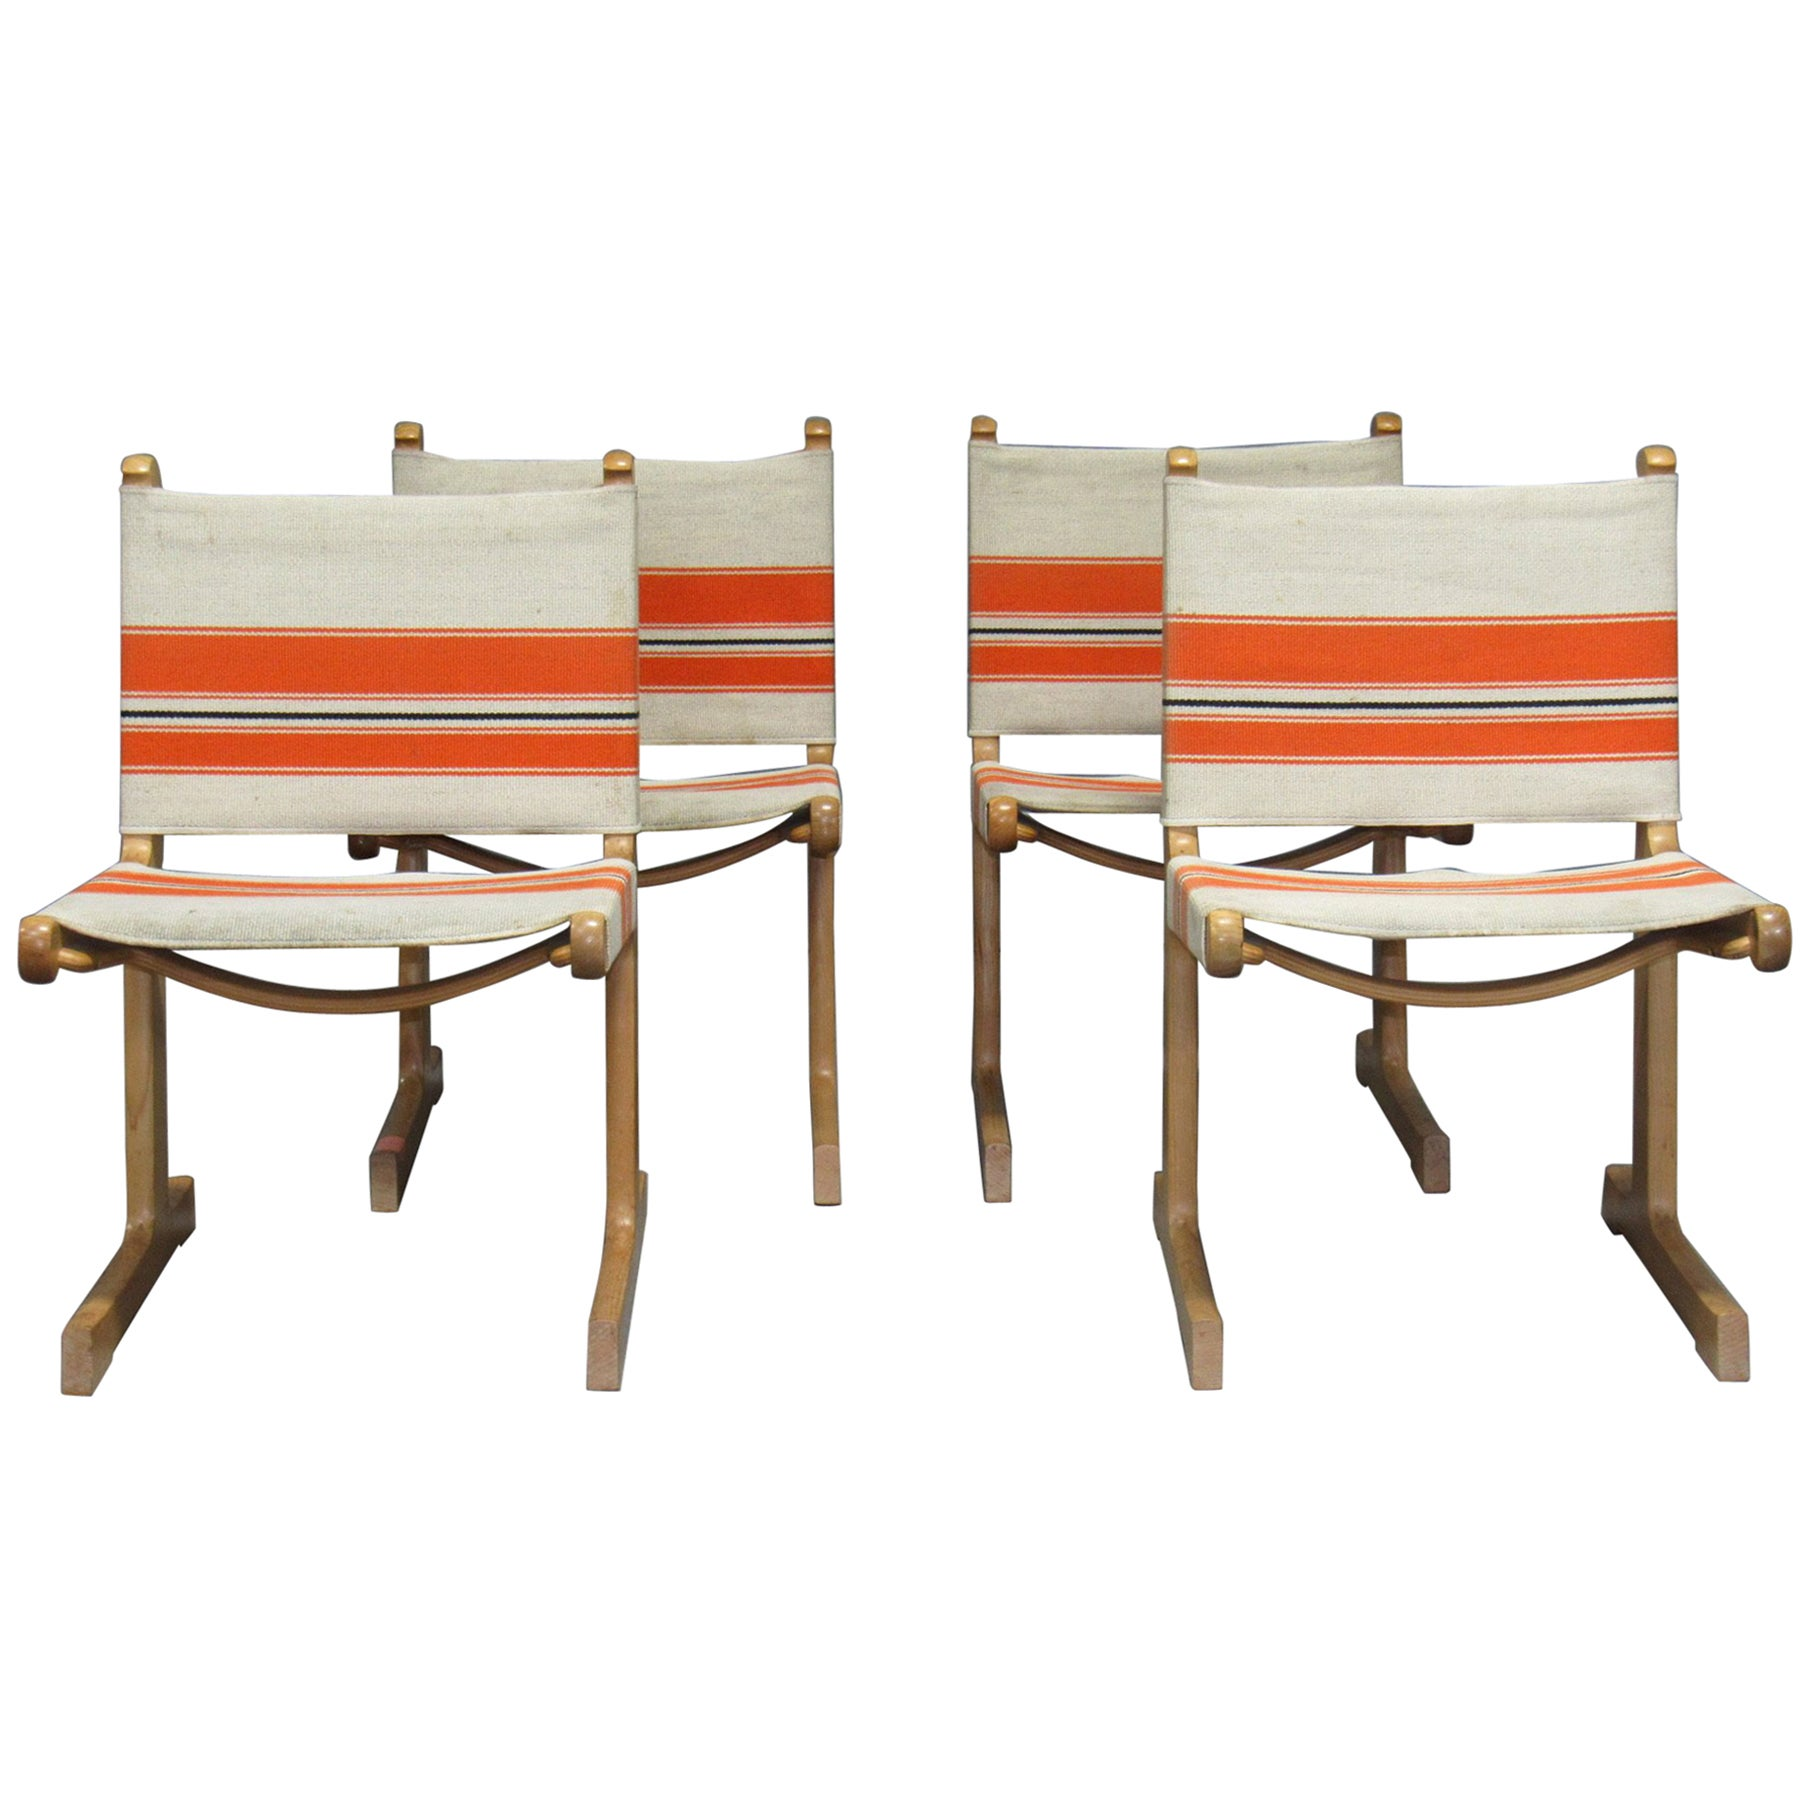 Set of 4 Cantilevered Dining Chairs by Ditte & Adrian Heath for France & Son